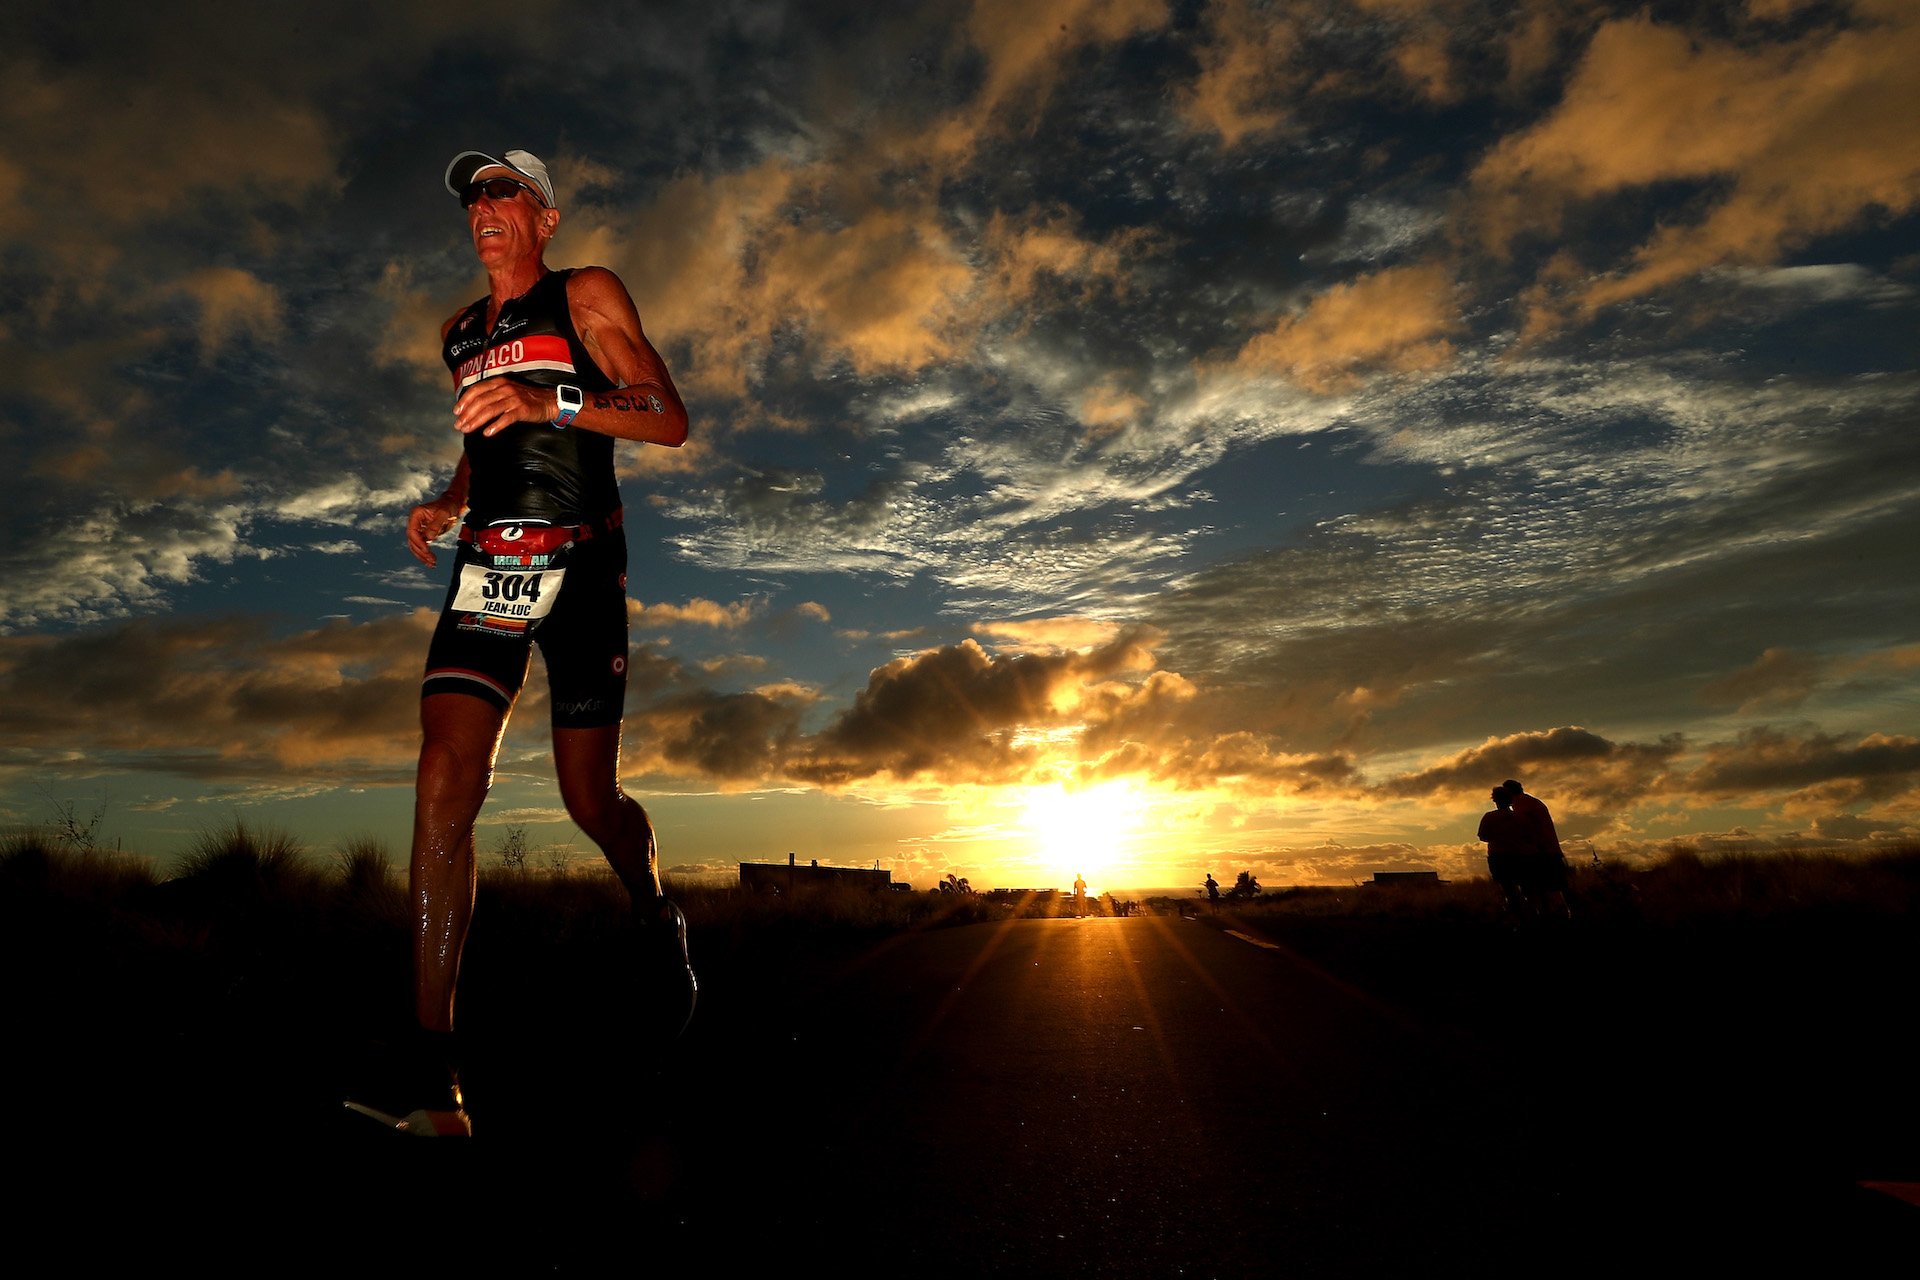 (Photo by Al Bello/Getty Images for IRONMAN)